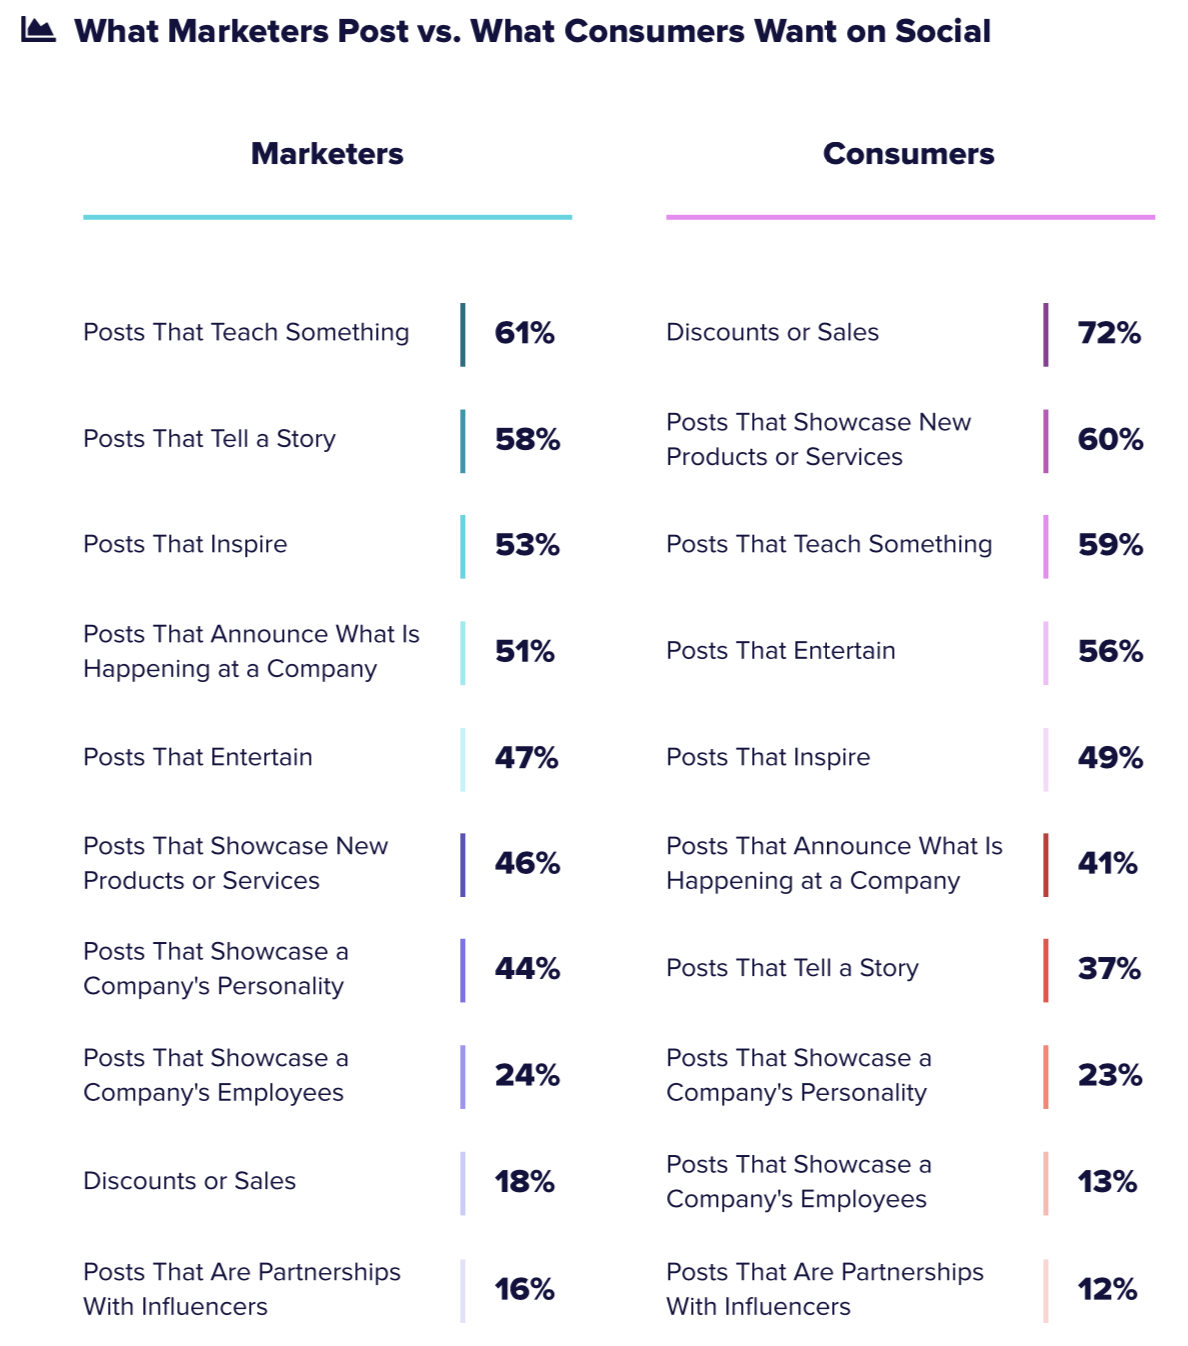 What Marketers Post vs. What Consumers Want on Social